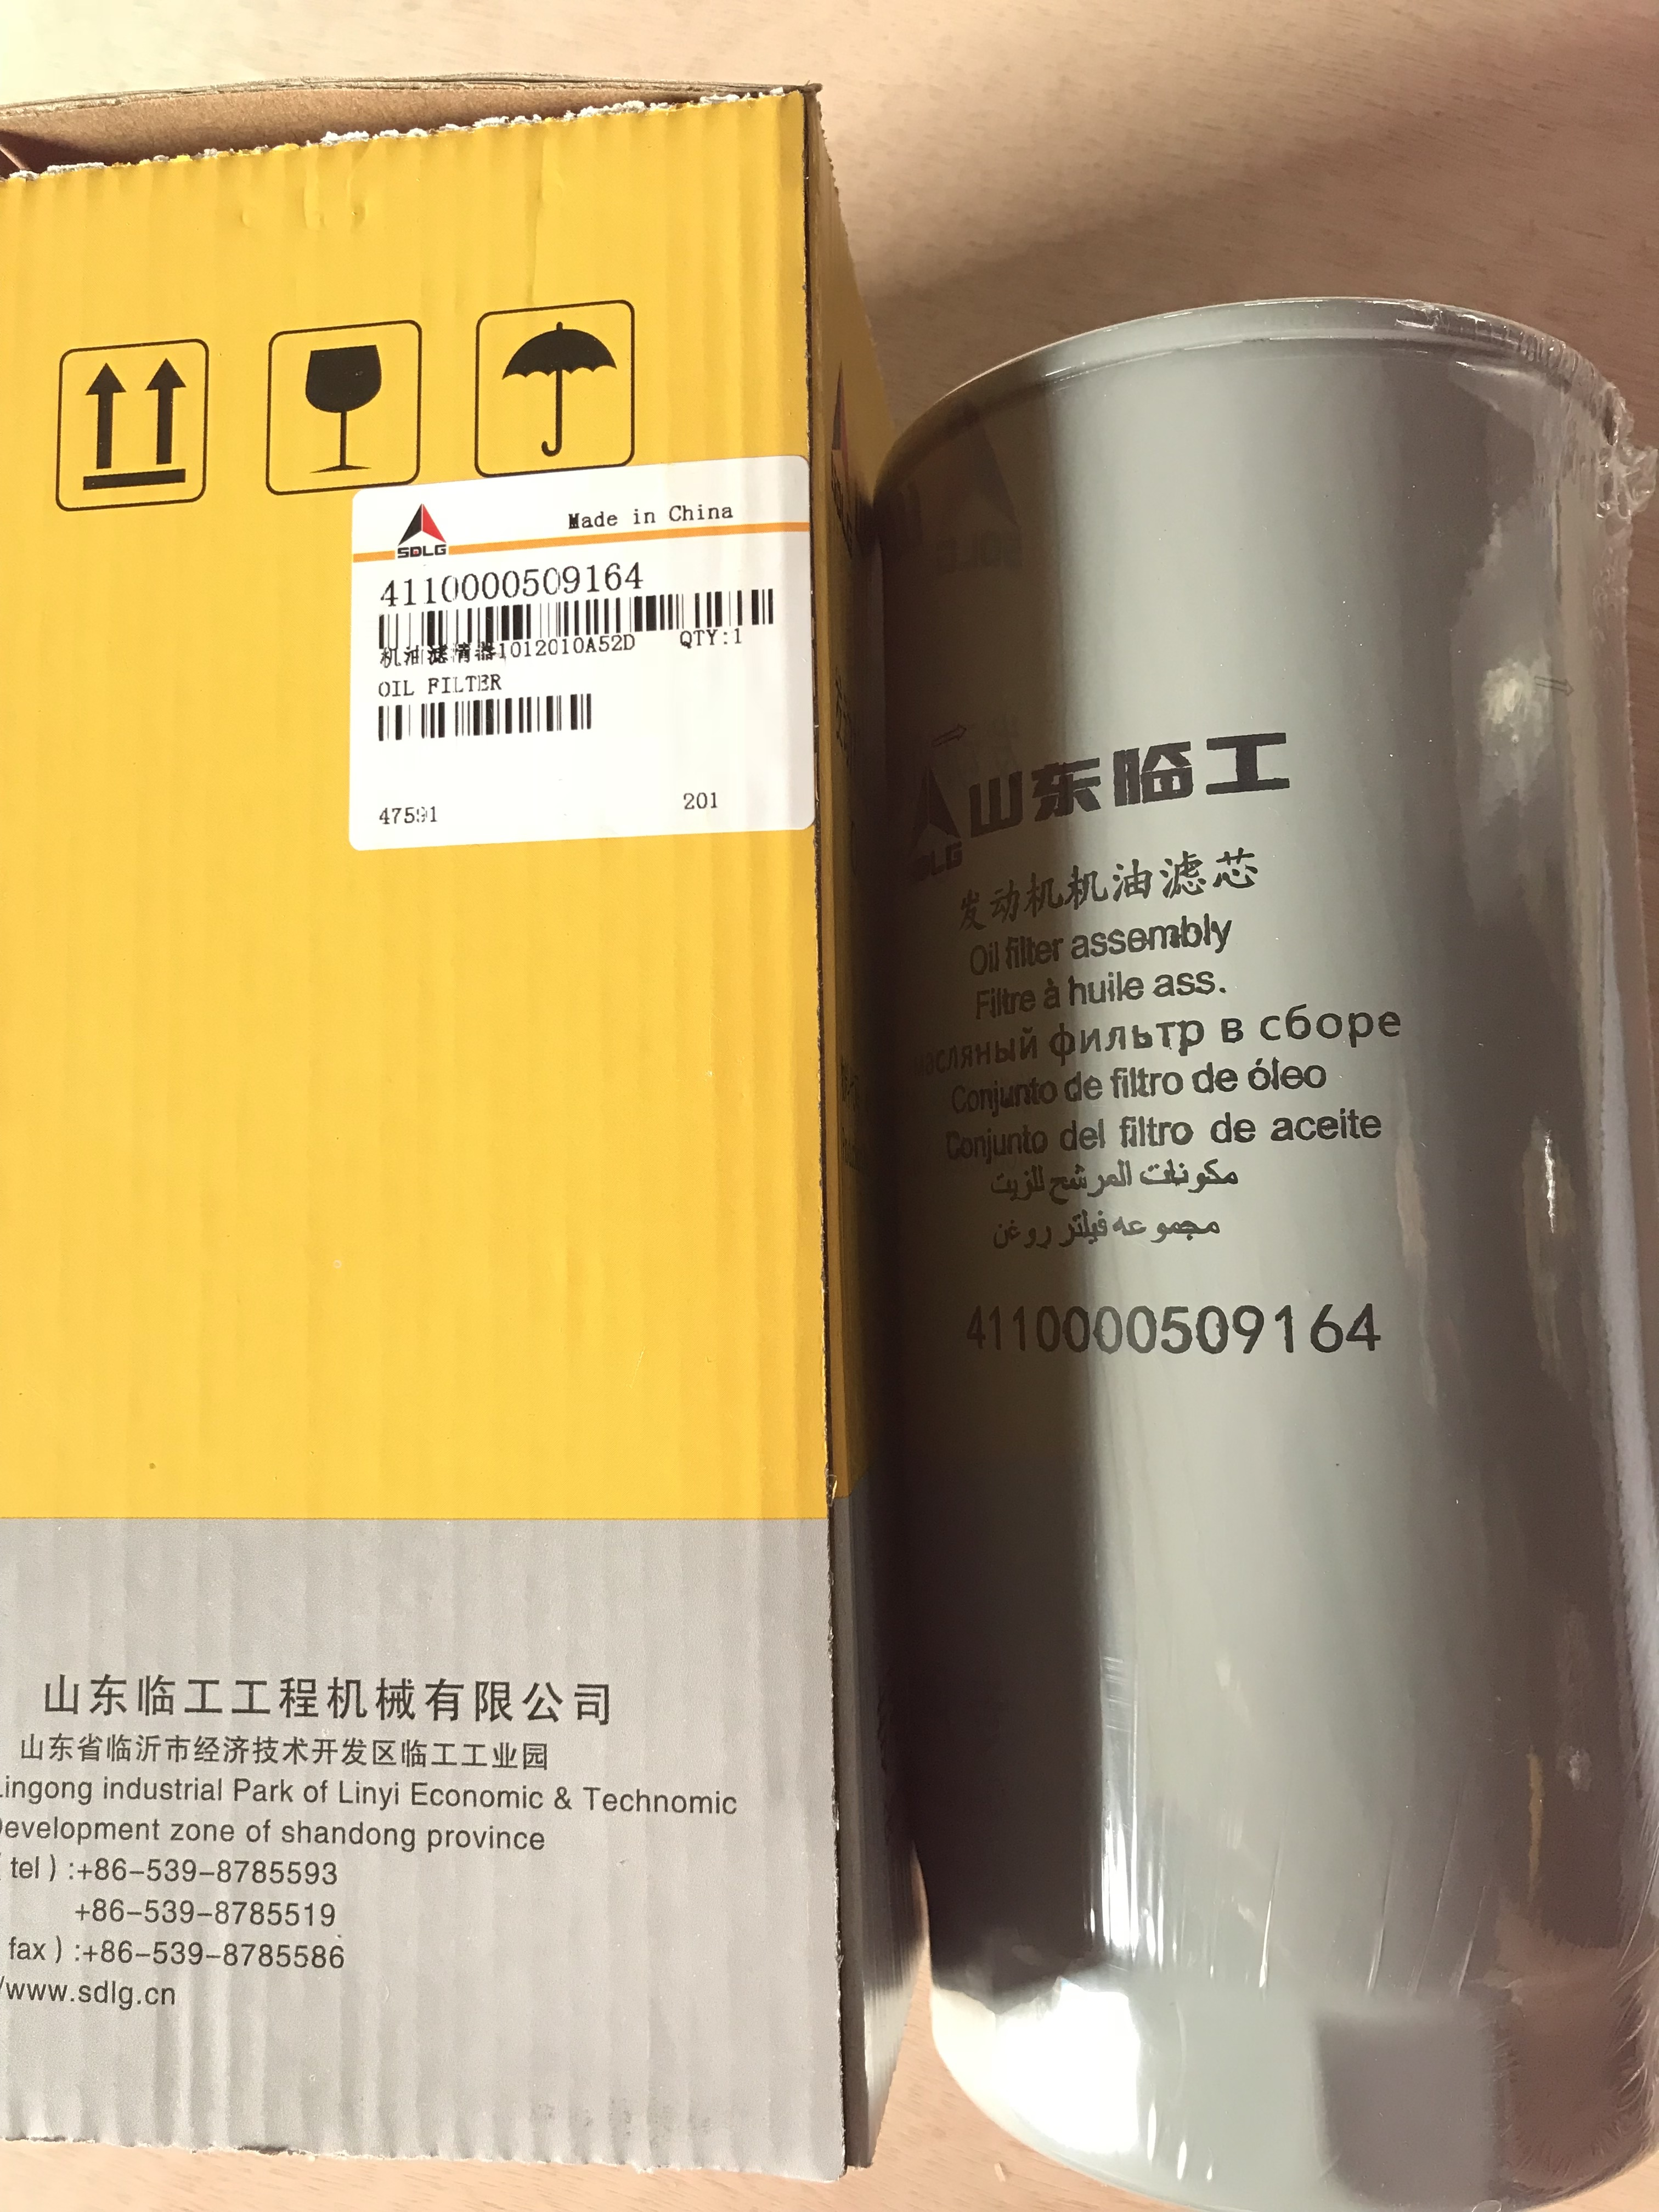 SDLG LG936L LG956L Wheel Loader Spare Parts 4110000509164 OIL FILTER